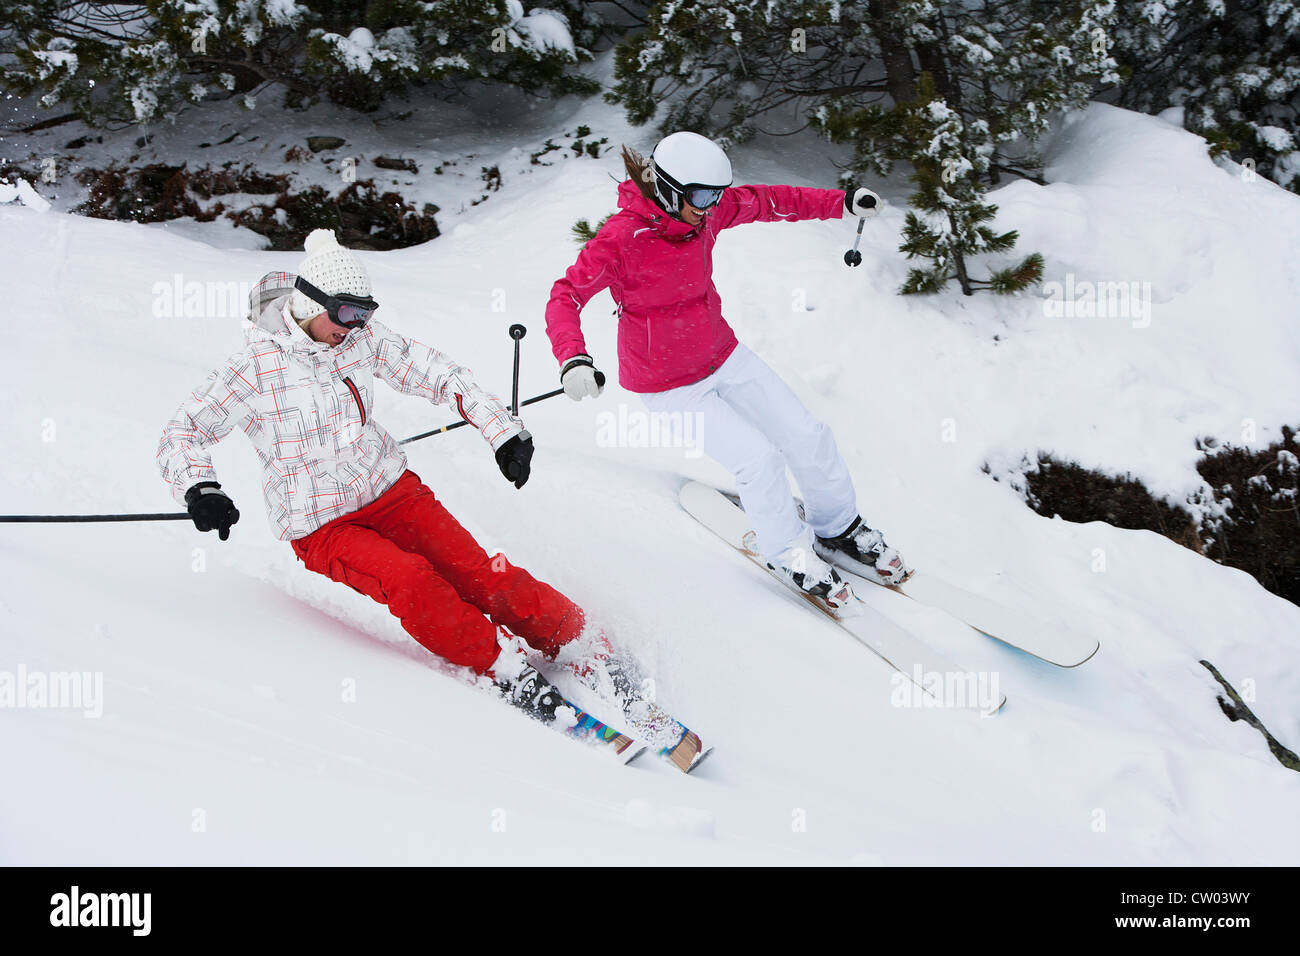 Skiers coasting on snowy slope - Stock Image